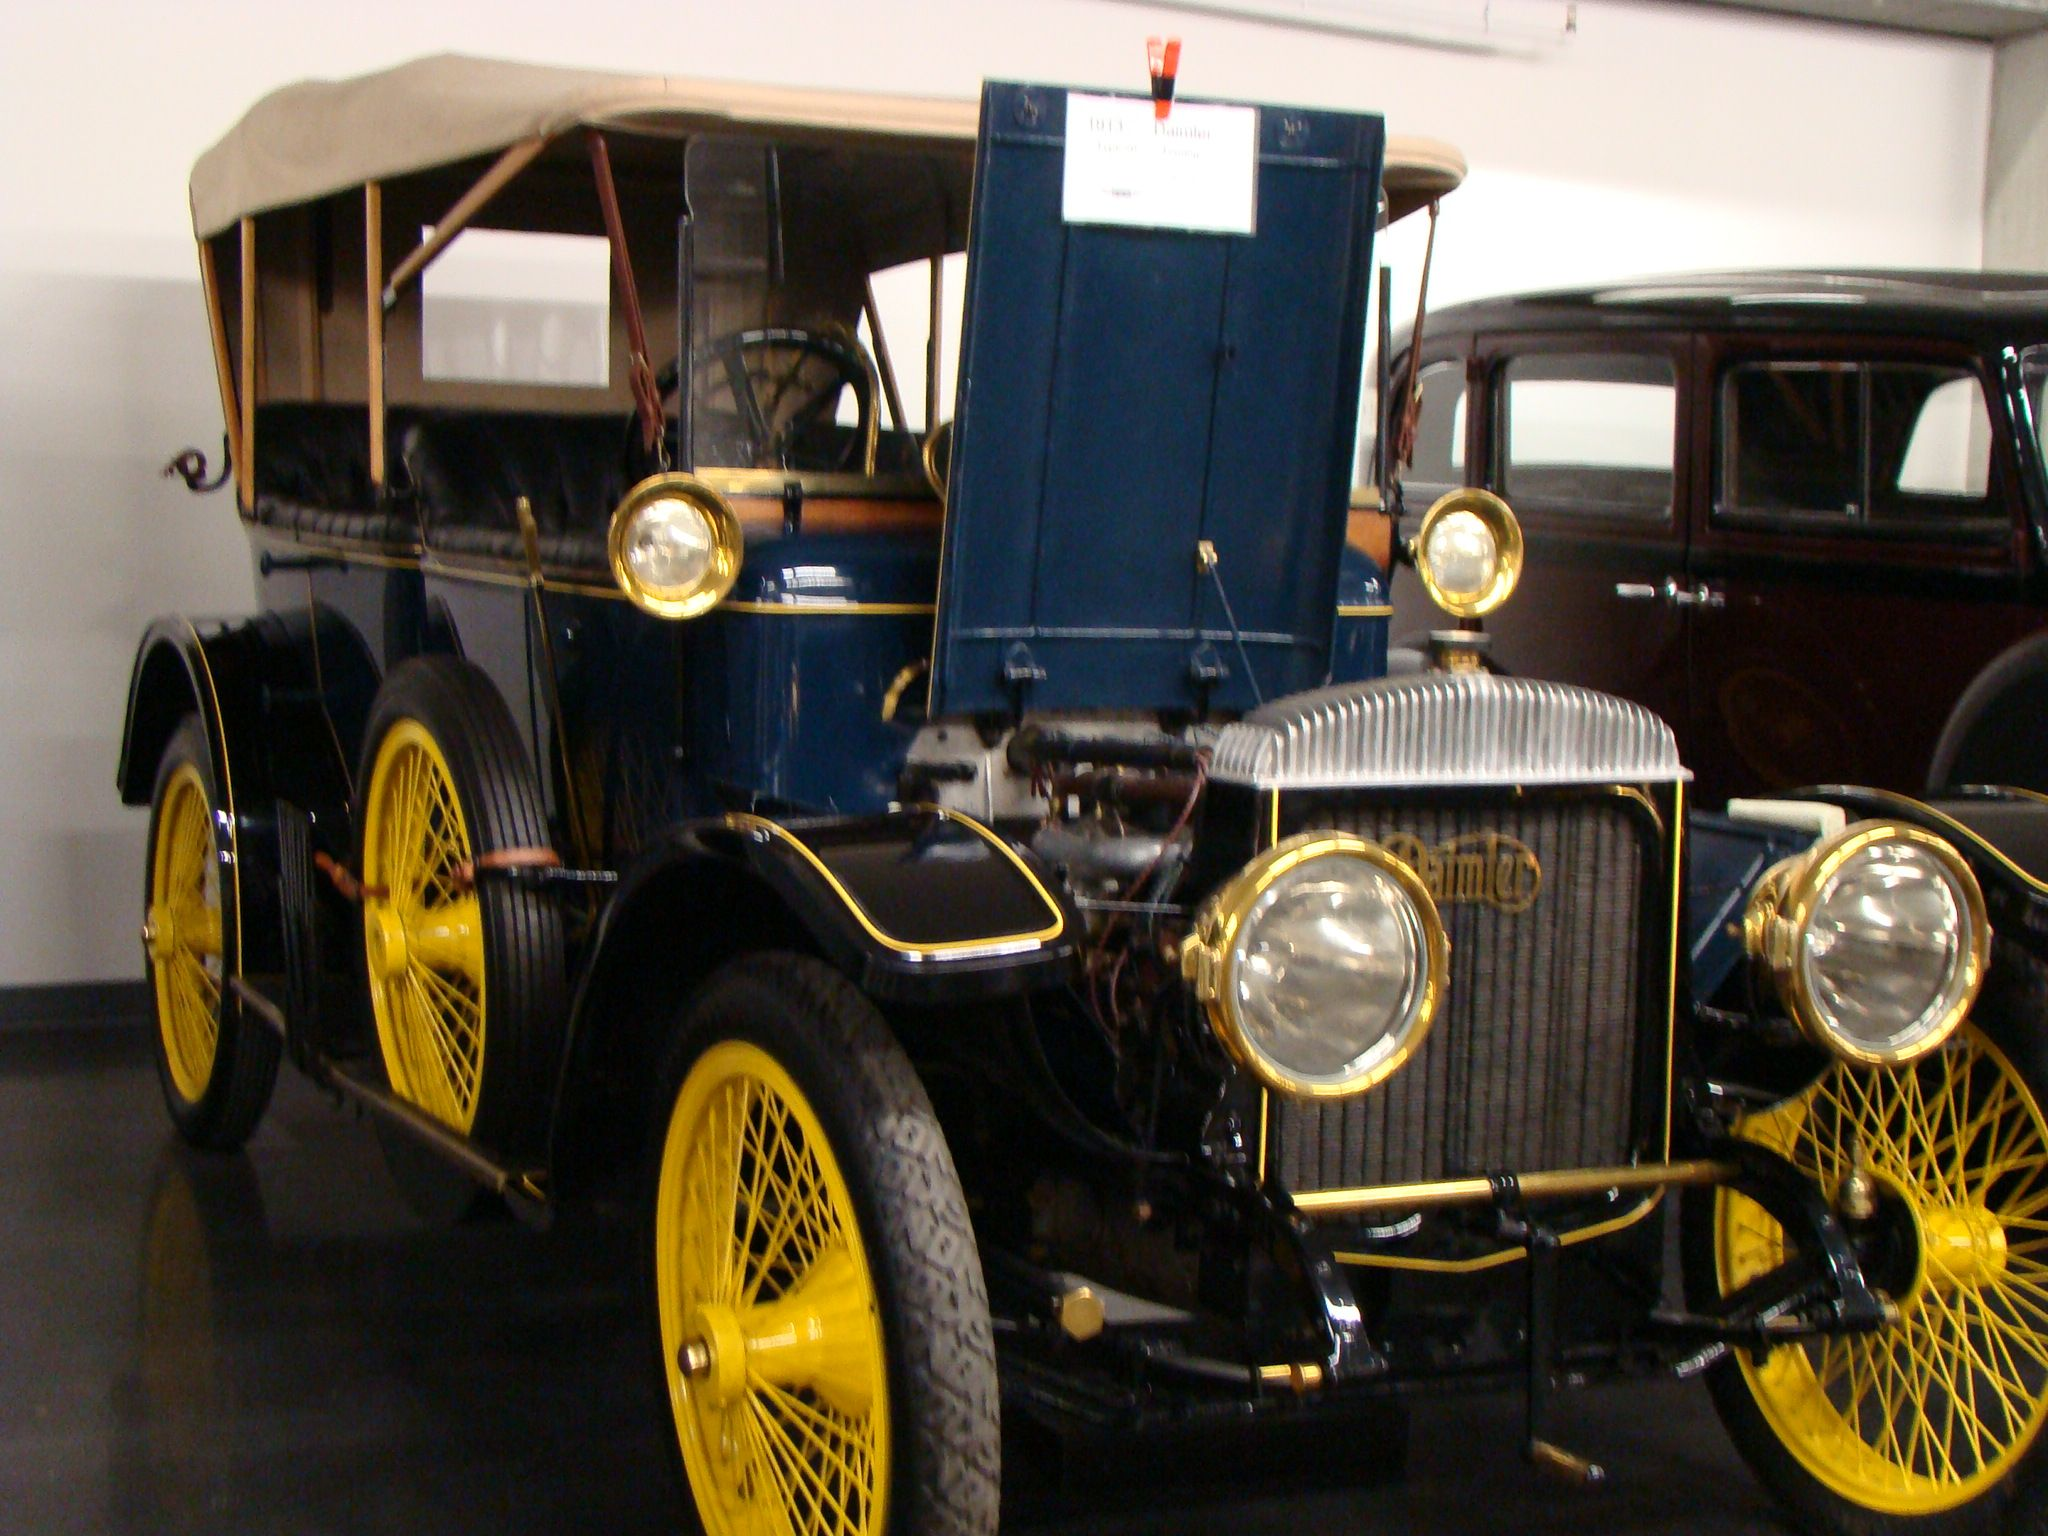 1913 daimler brought to you by the car insurance agents at